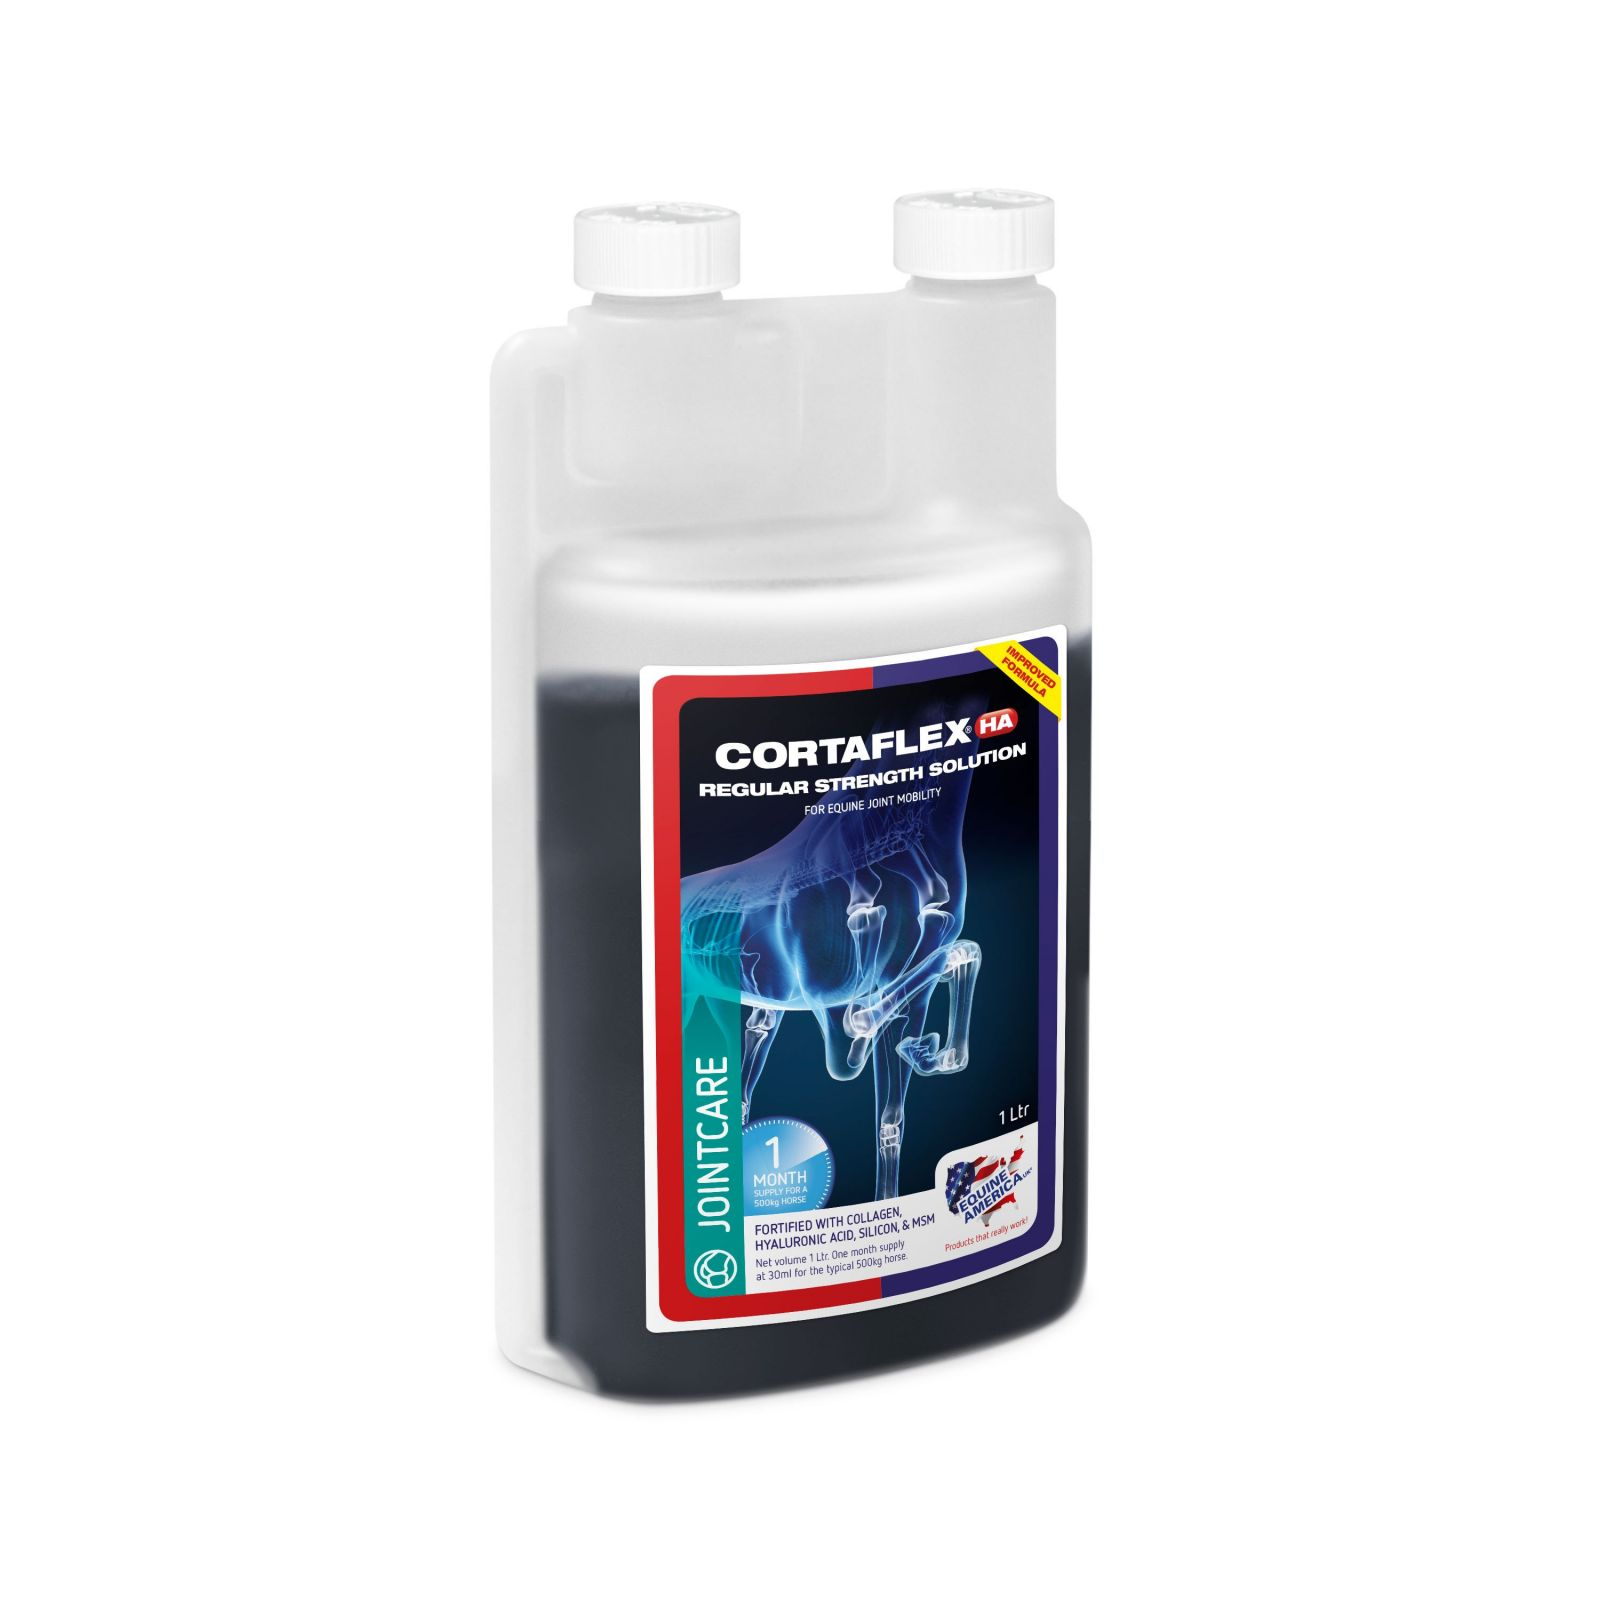 CORTAFLEX® HA REGULAR SOLUTION